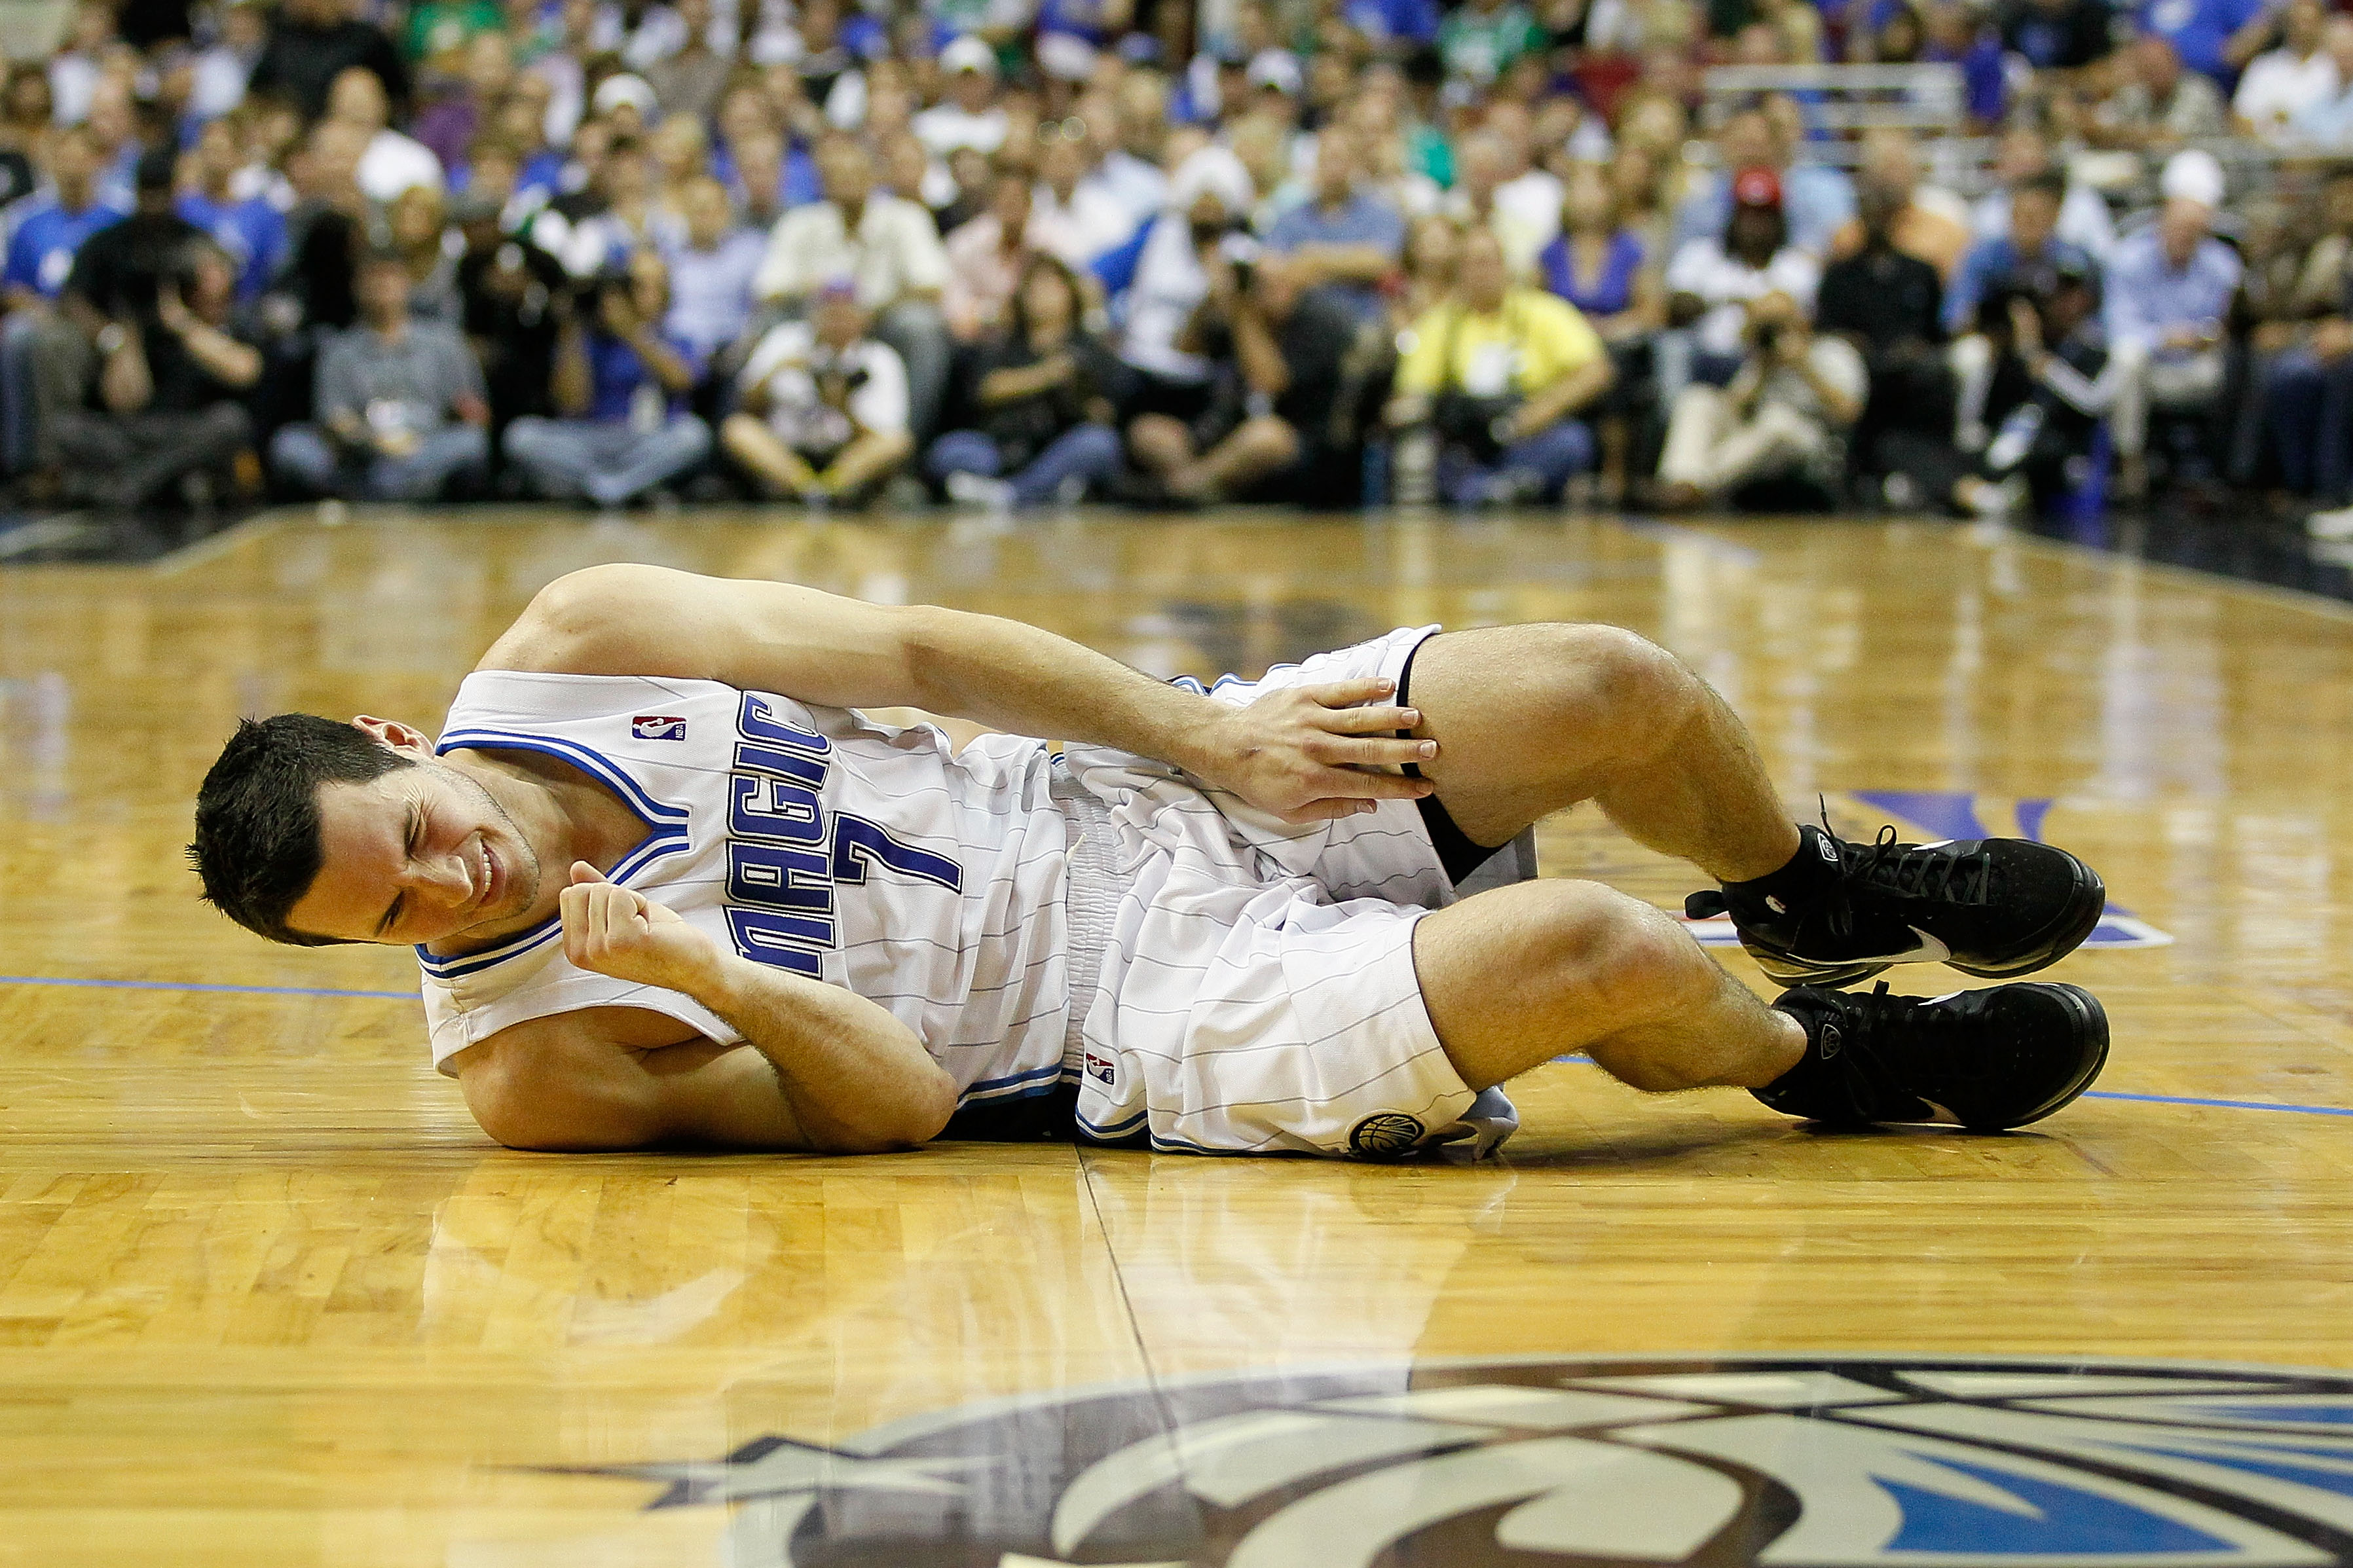 ORLANDO, FL - MAY 18:  J.J. Redick #7 of the Orlando Magic lies on the court in pain against the Boston Celtics in Game Two of the Eastern Conference Finals during the 2010 NBA Playoffs at Amway Arena on May 18, 2010 in Orlando, Florida.  NOTE TO USER: Us